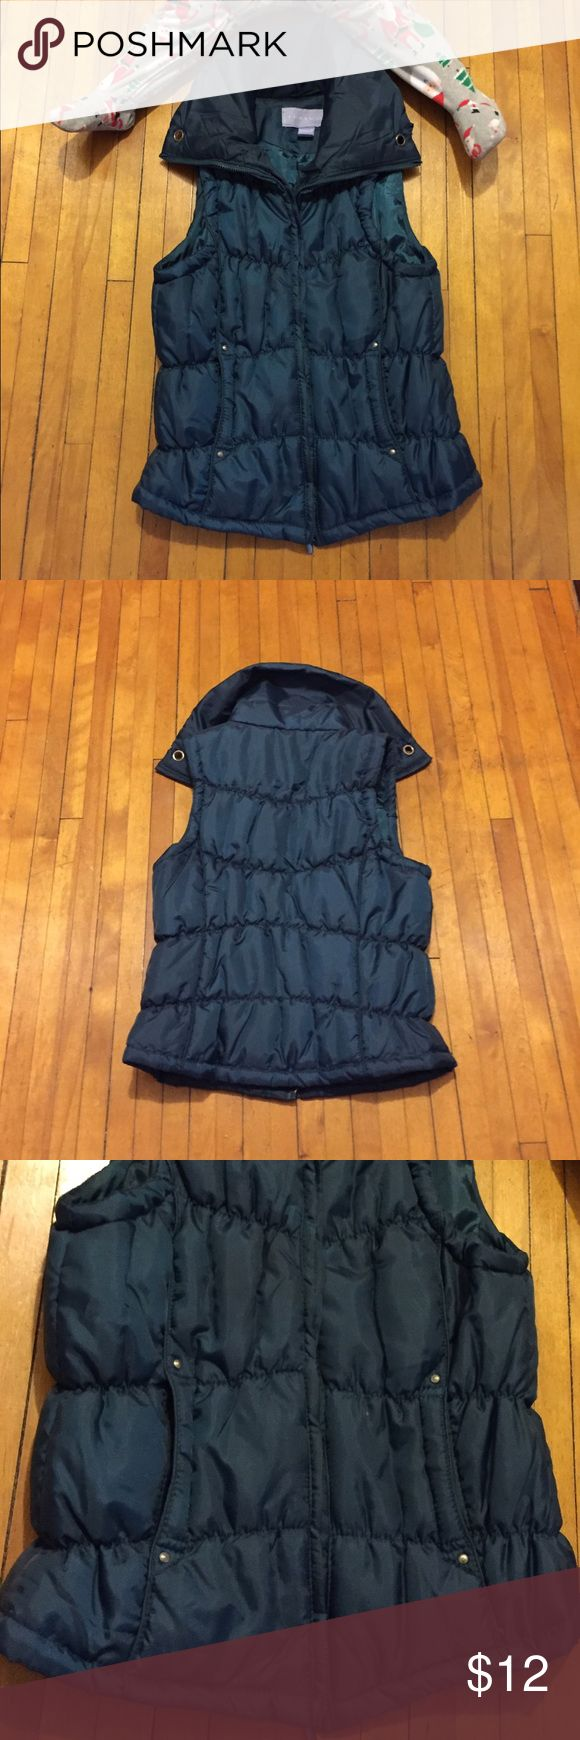 Laura Scott Outdoor Vest Color Blue green/ teal. New without tag. Never worn. No damage. In excellent condition. Laura Scott Jackets & Coats Vests